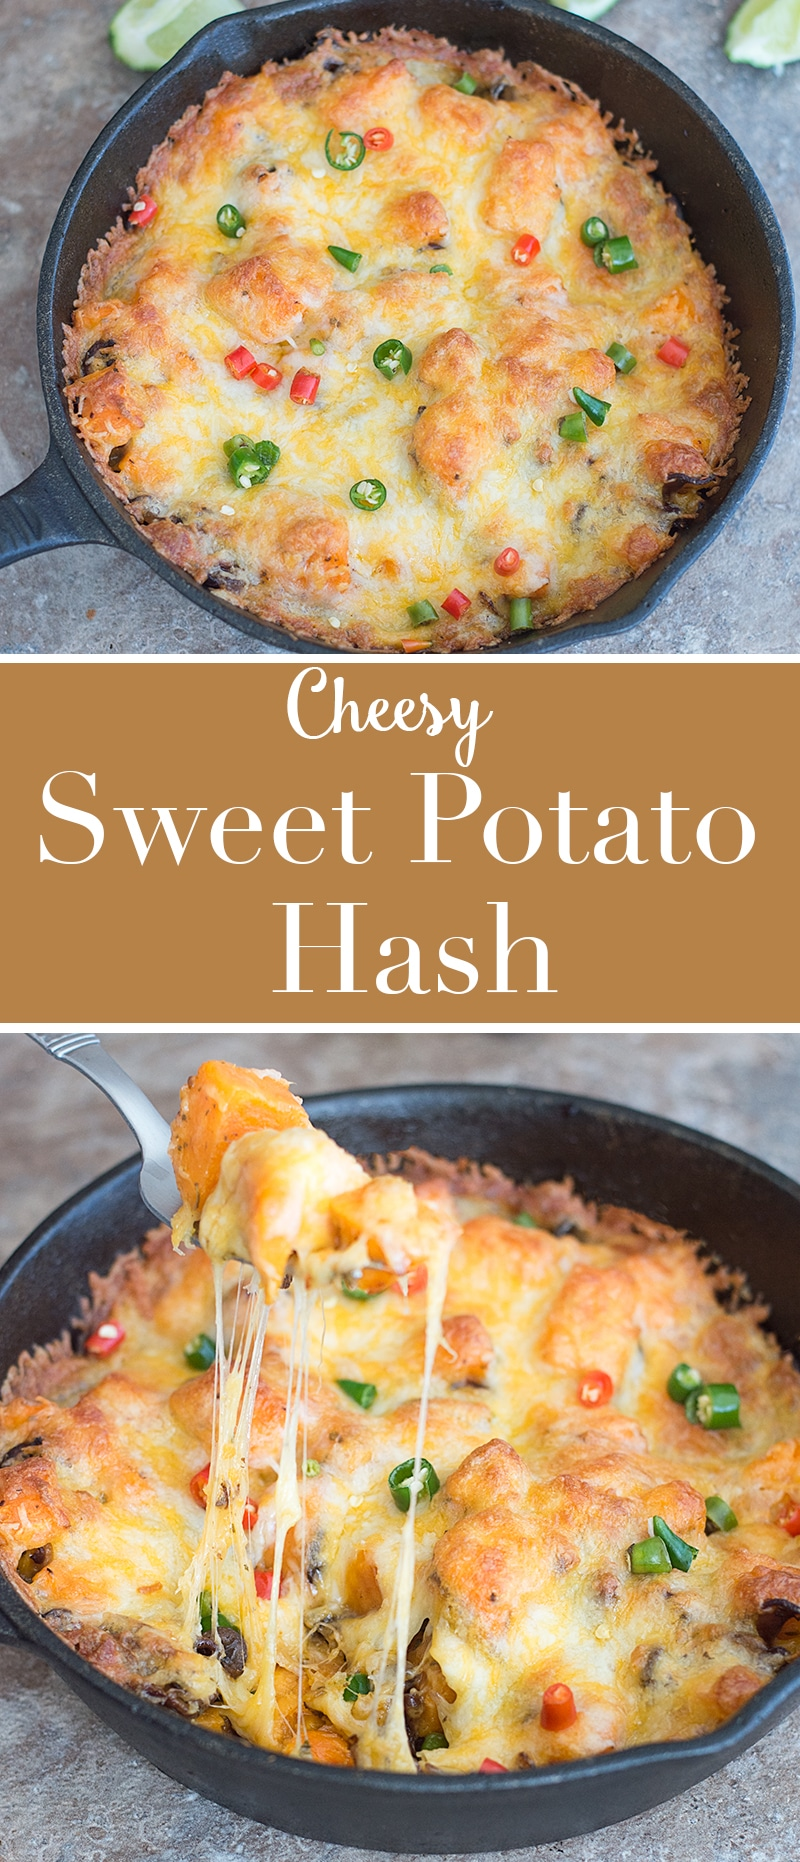 Hearty and cheesy cast iron sweet potato hash recipe that is the perfect comfort food recipe. Made with mushrooms, bell peppers and topped with cheese